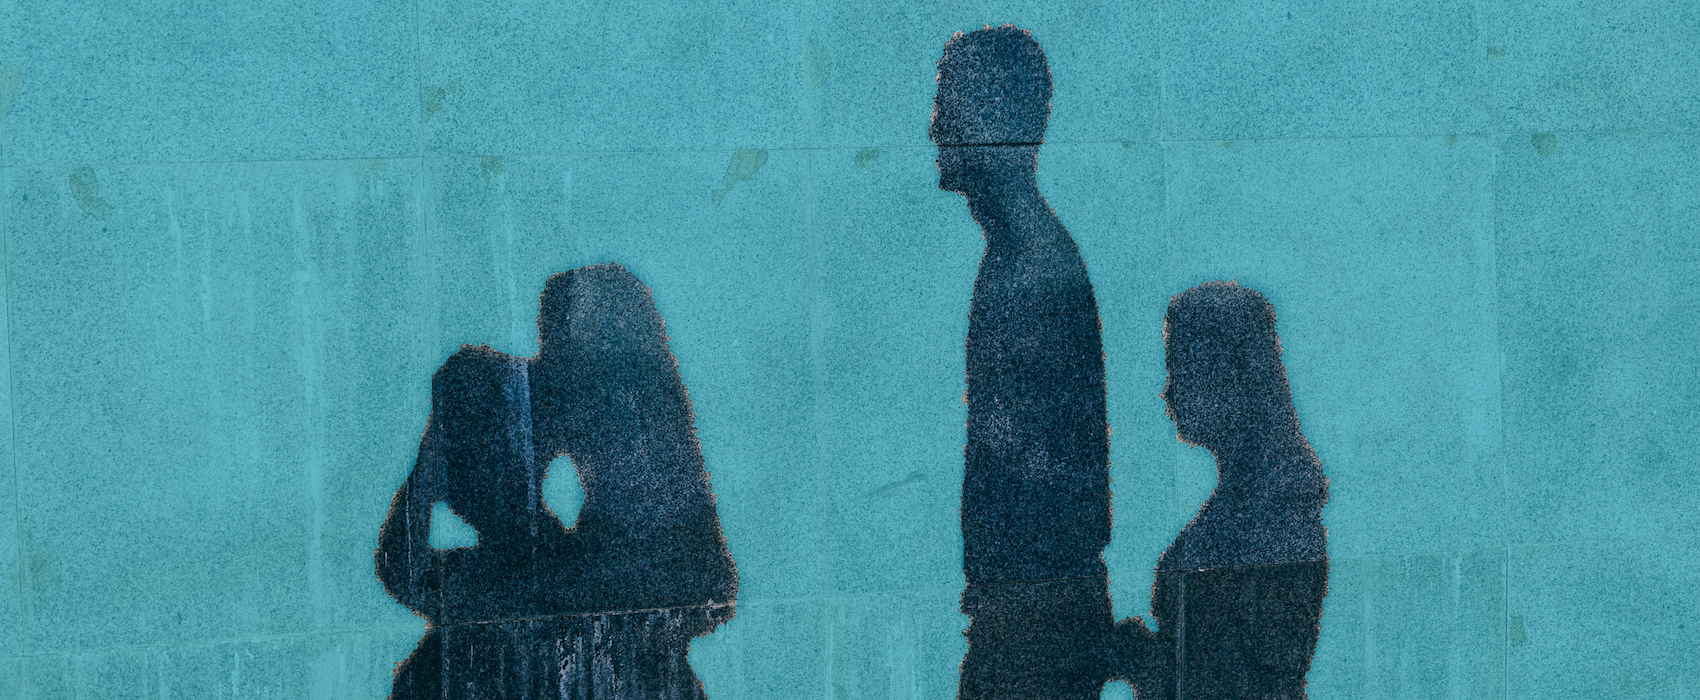 people shadows blue cropped.png